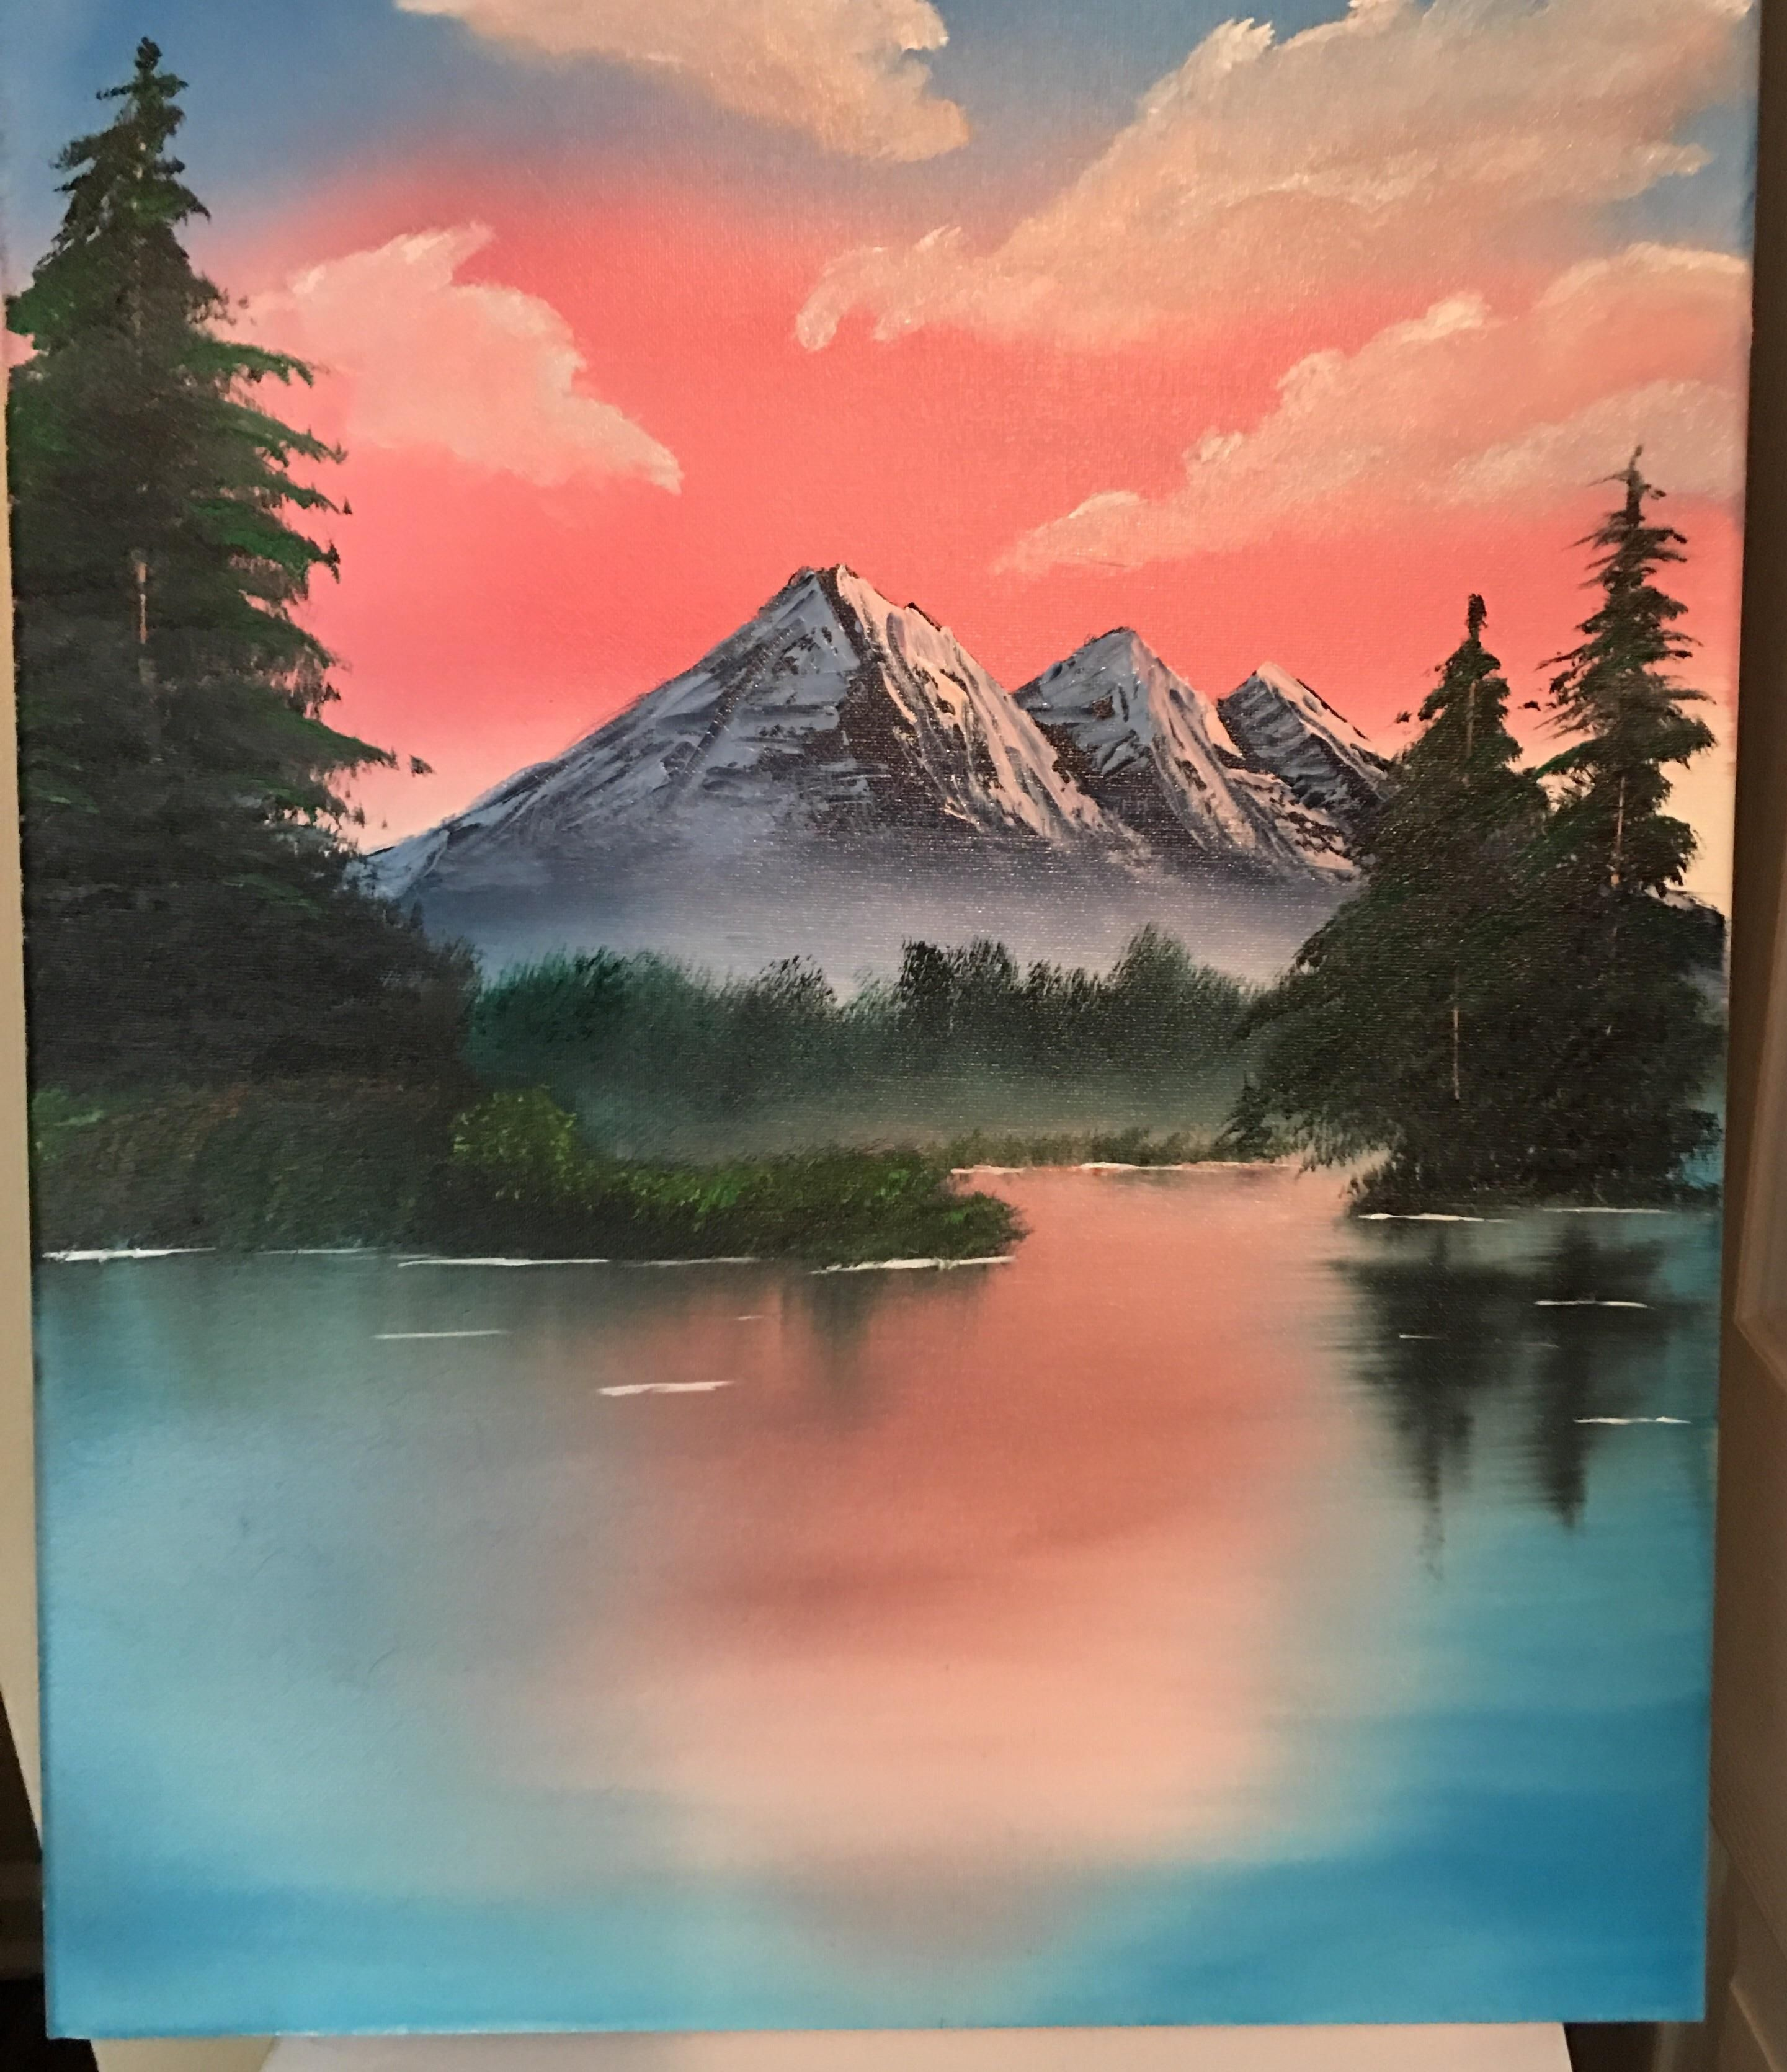 Was Inspired By This Sub To Attempt My 1st Bob Ross Painting Easy Landscape Paintings Landscape Paintings Bob Ross Paintings